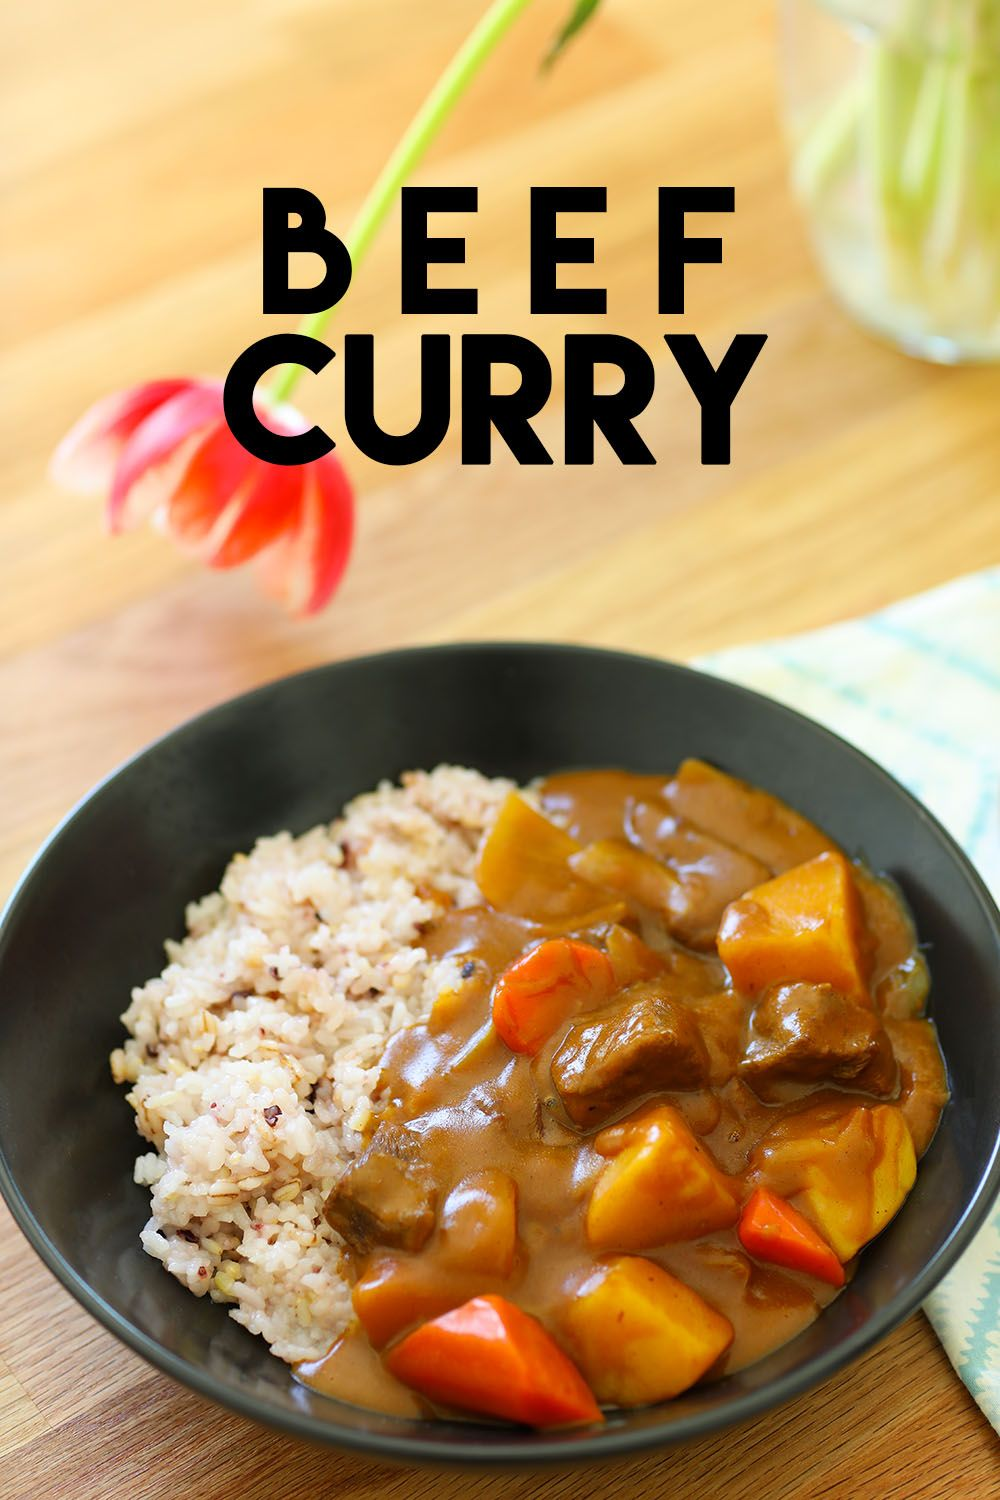 Simple Beef Curry Recipe Video Seonkyoung Longest Beef Curry Recipe Simple Beef Curry Curry Recipes